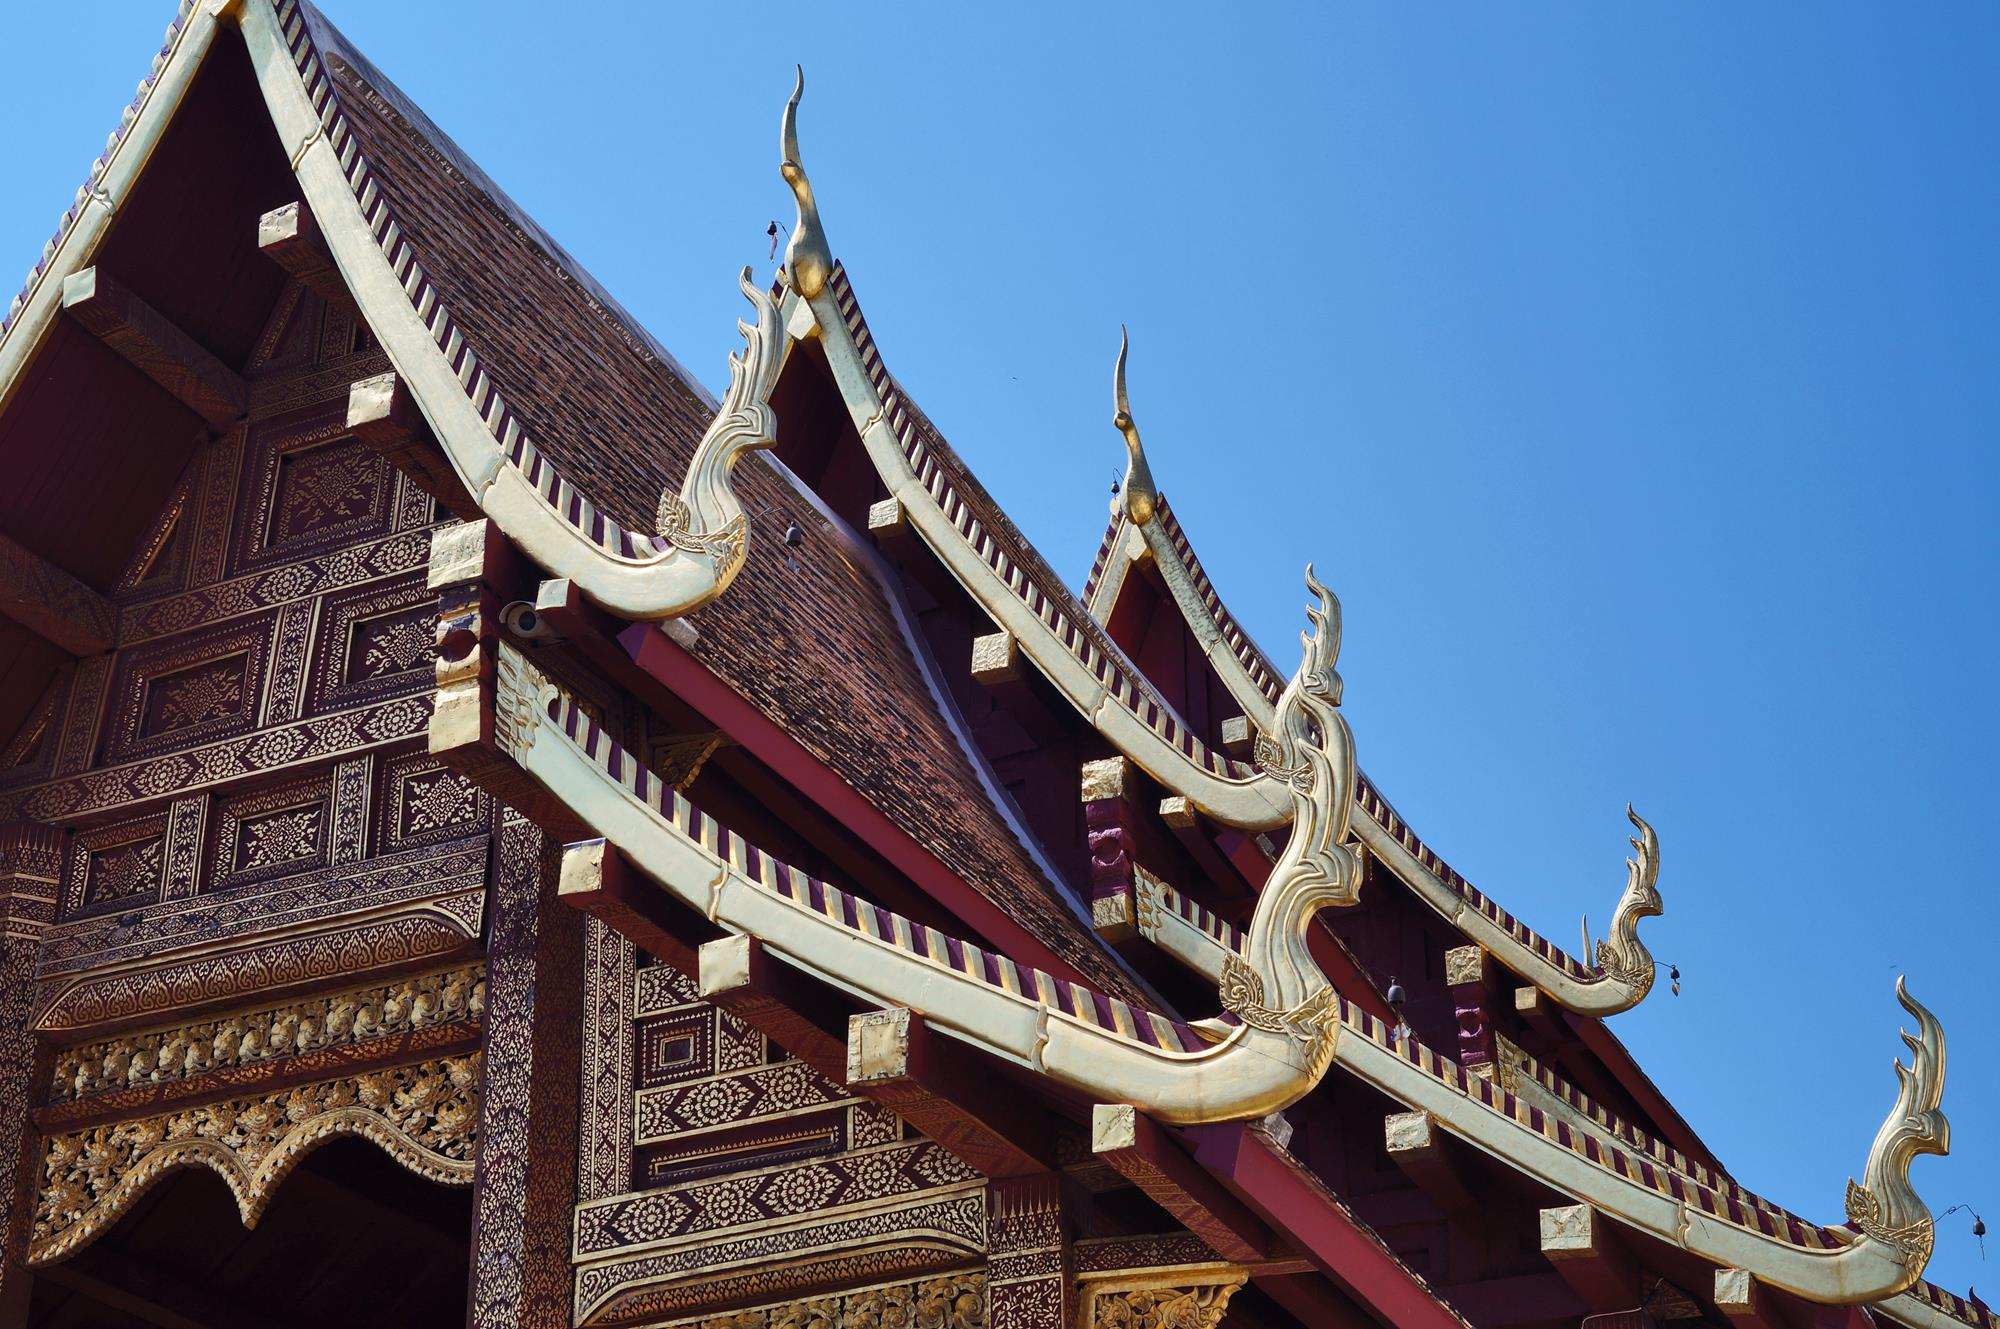 Chiang Mai High Quality Wallpapers